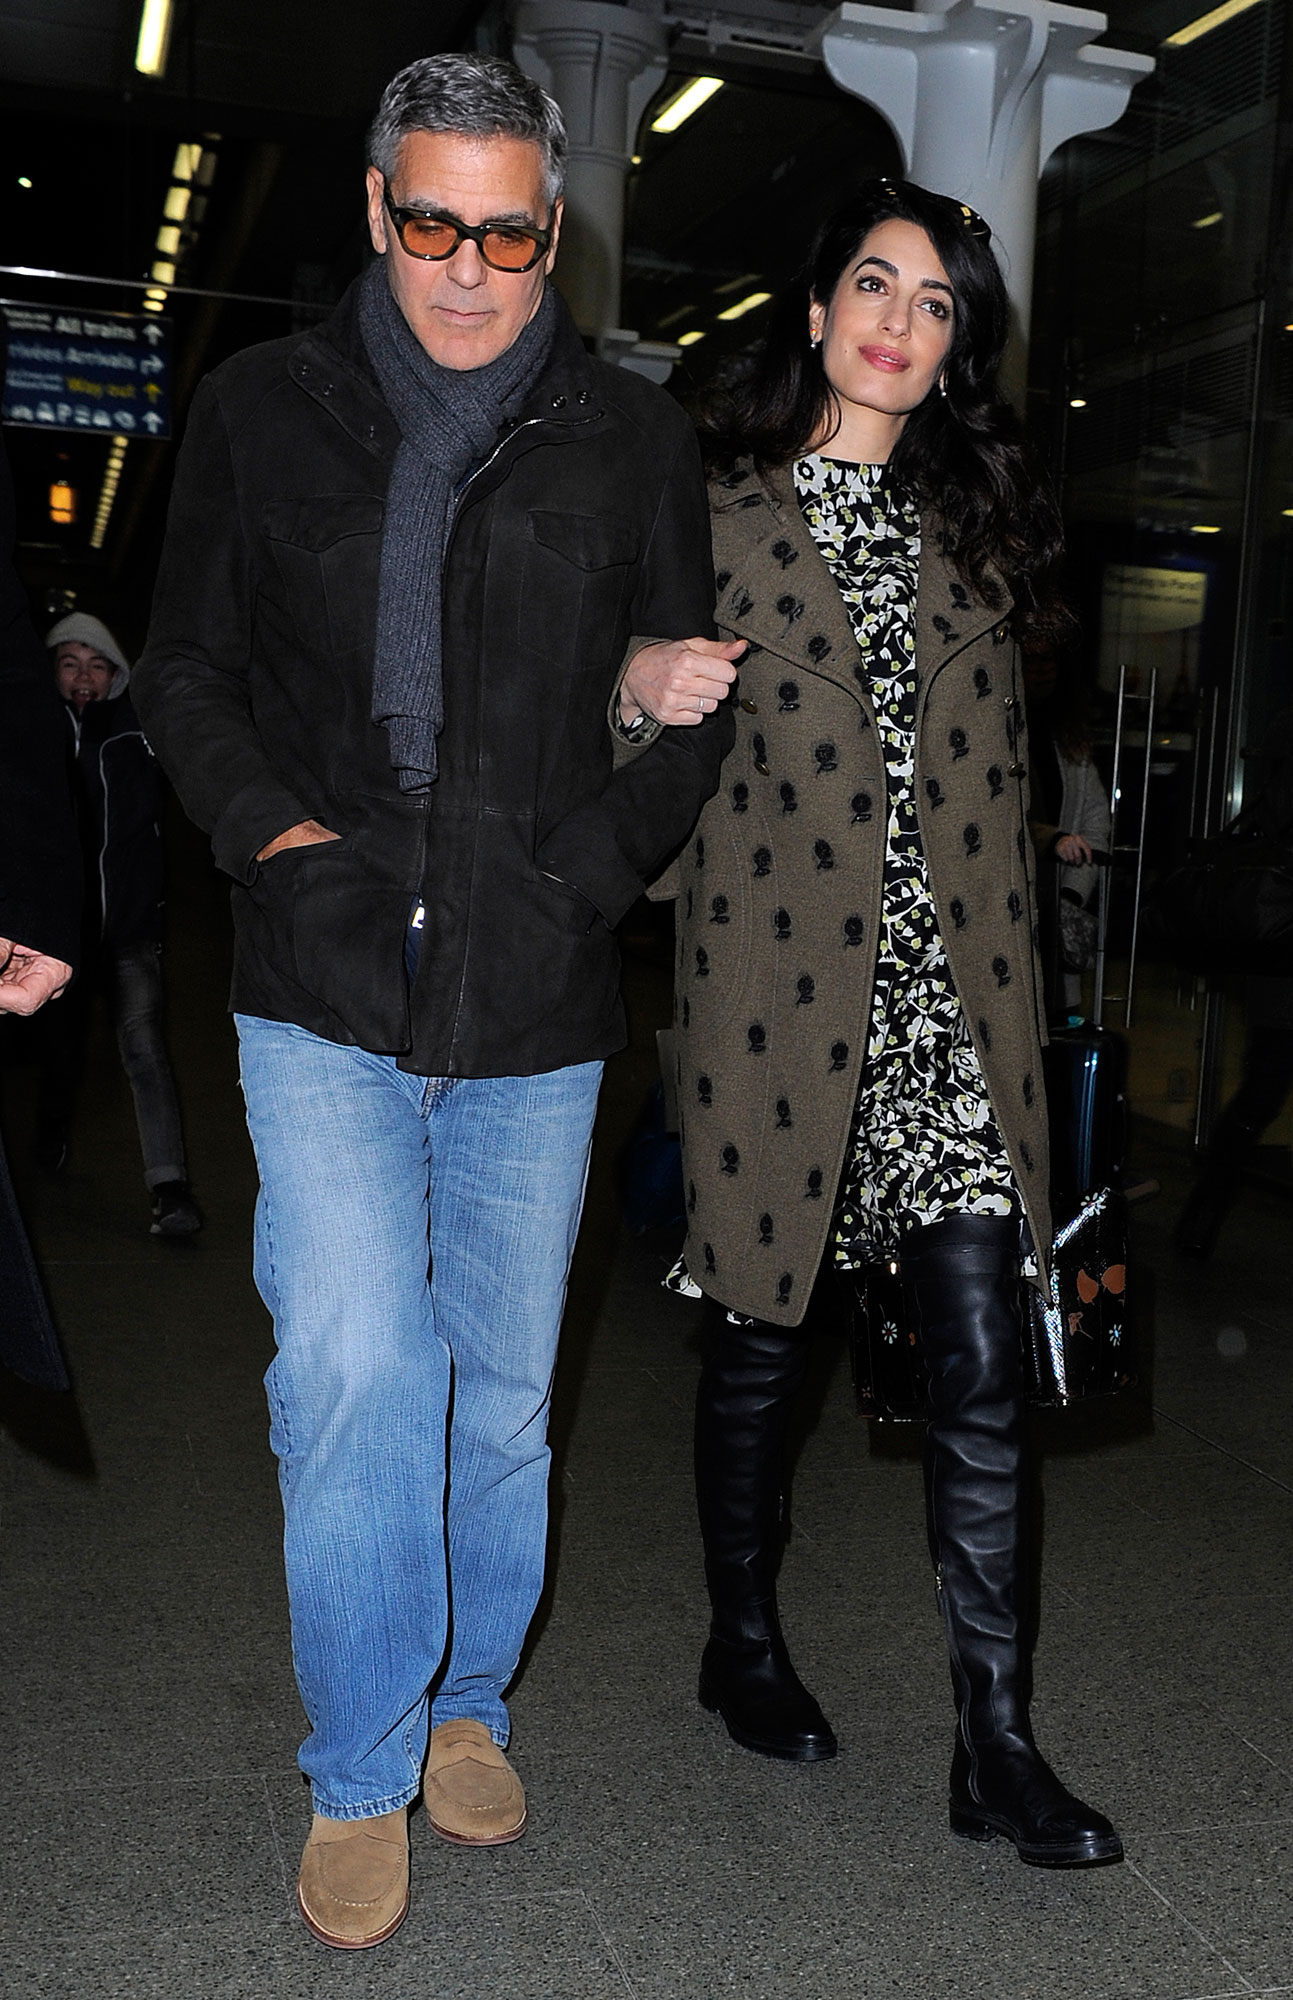 George Clooney and his pregnant wife Amal Clooney arriving at the Eurostar.